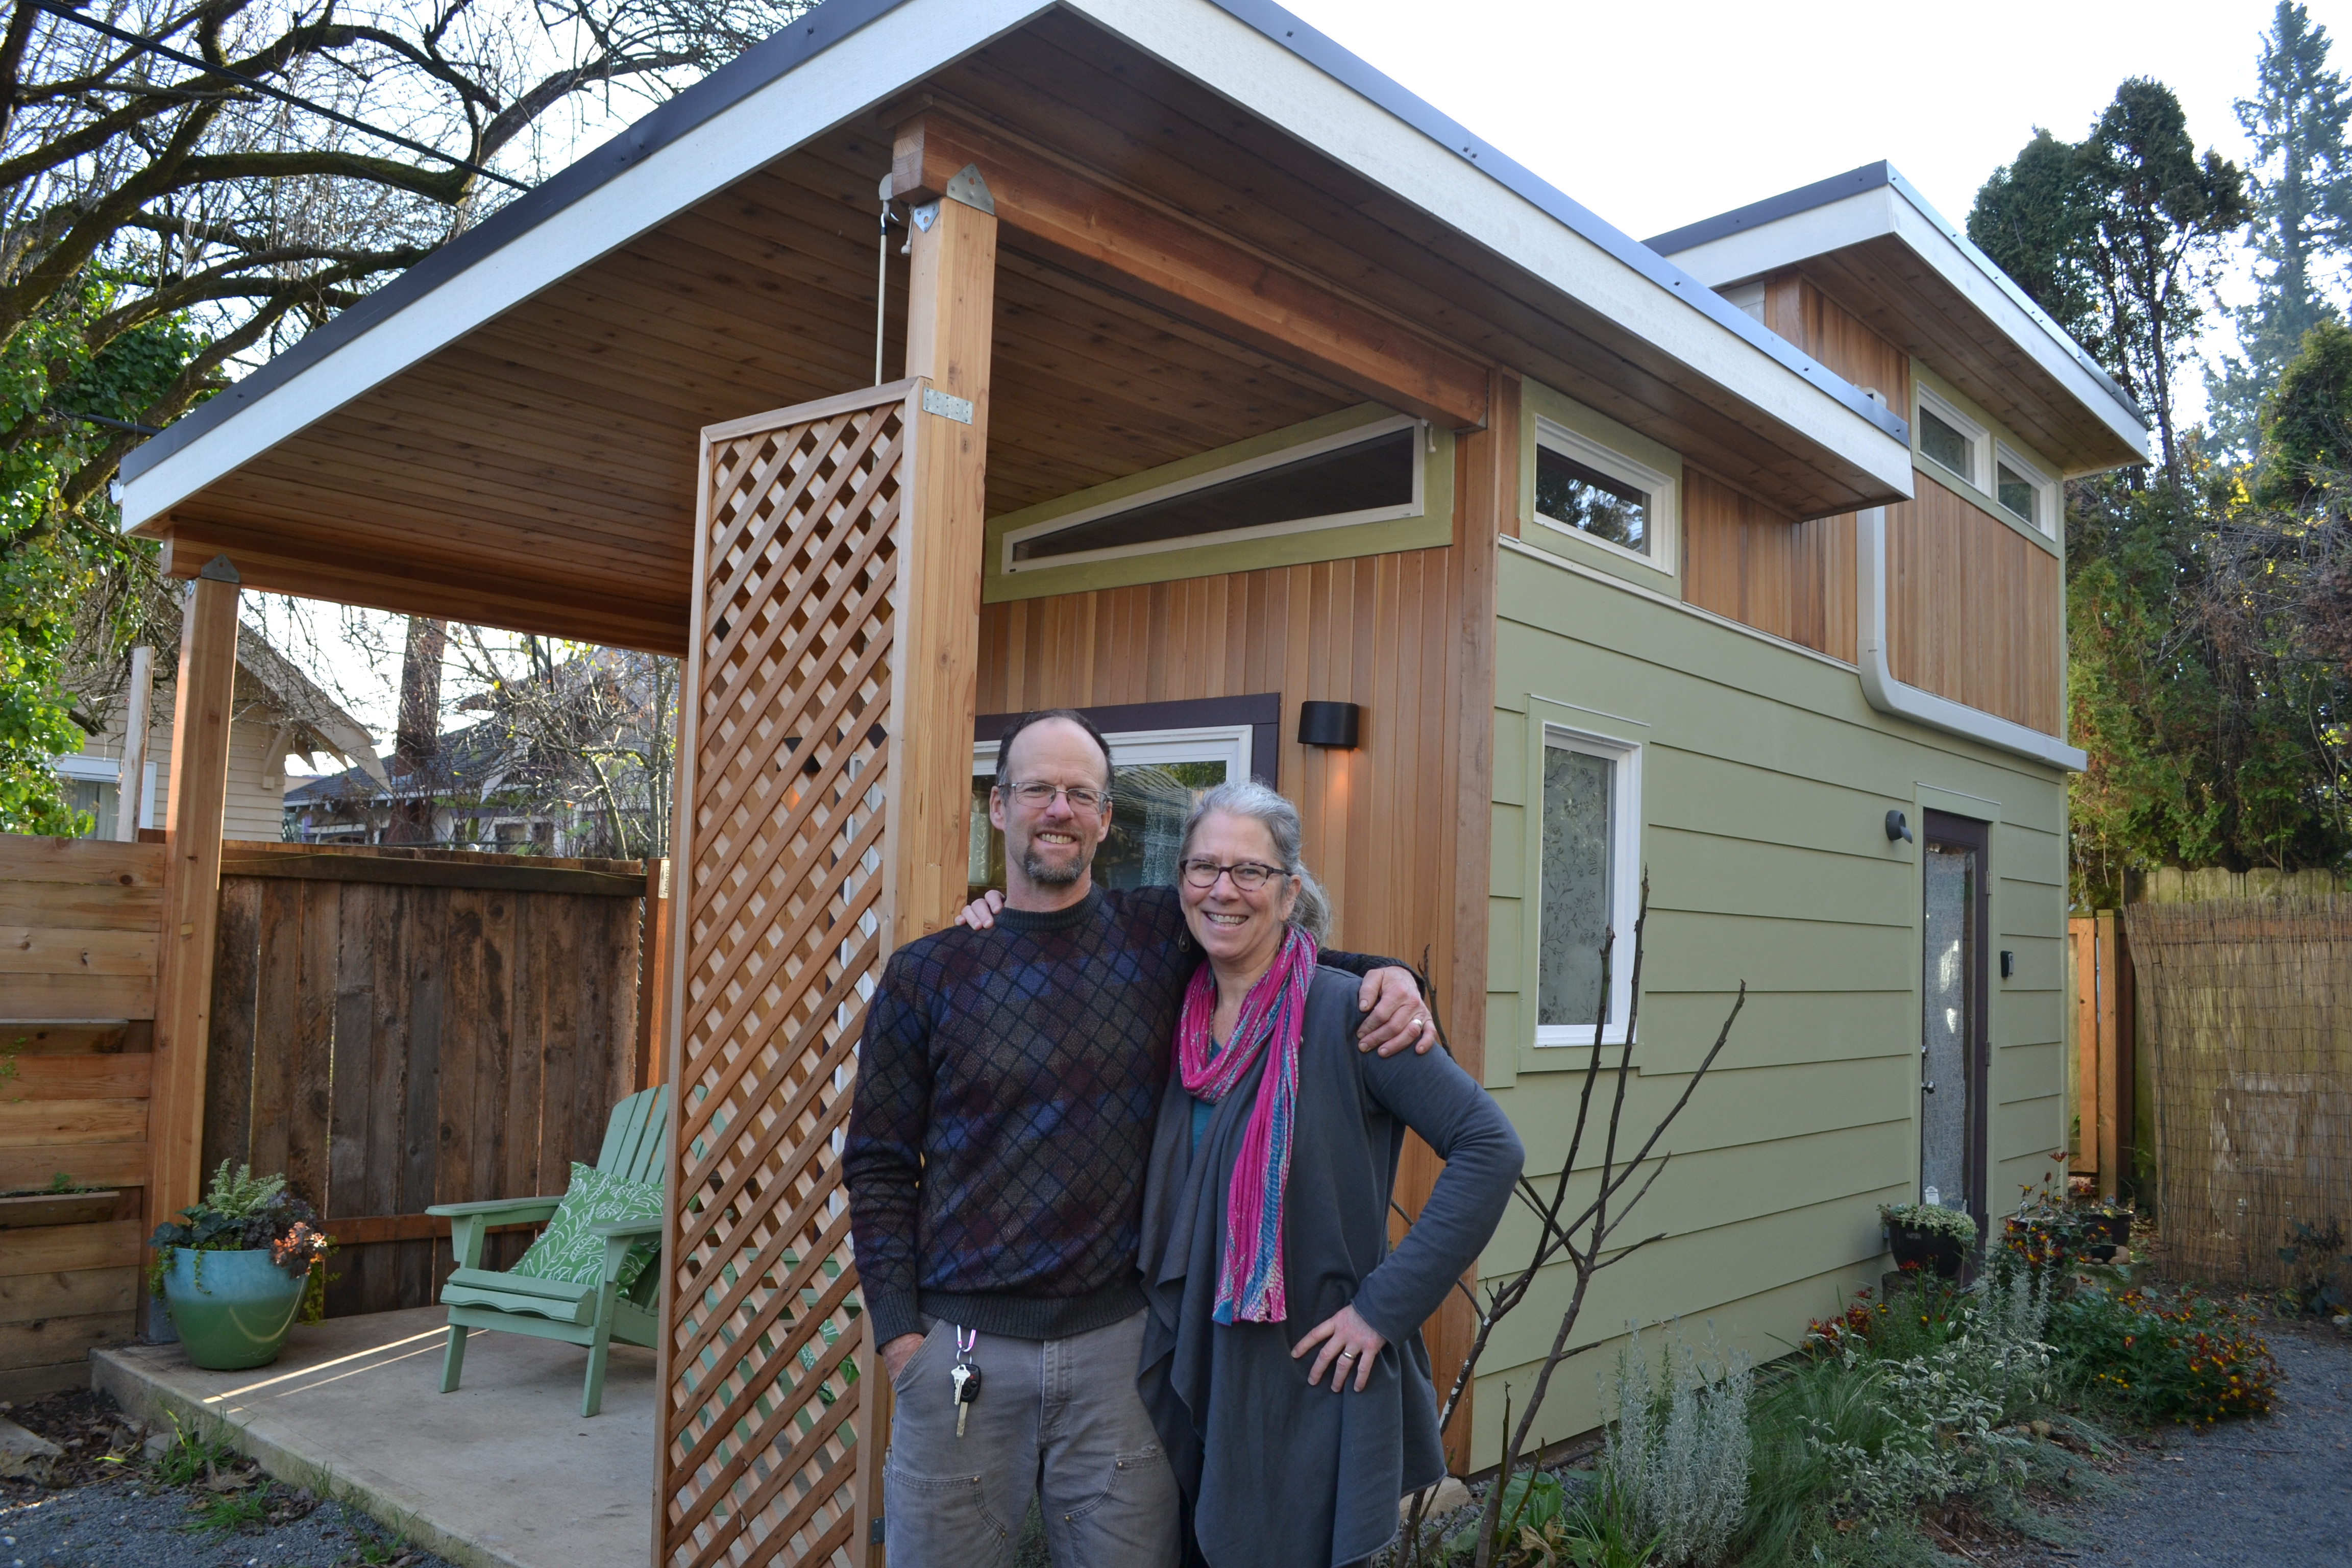 The modern shed tiny home